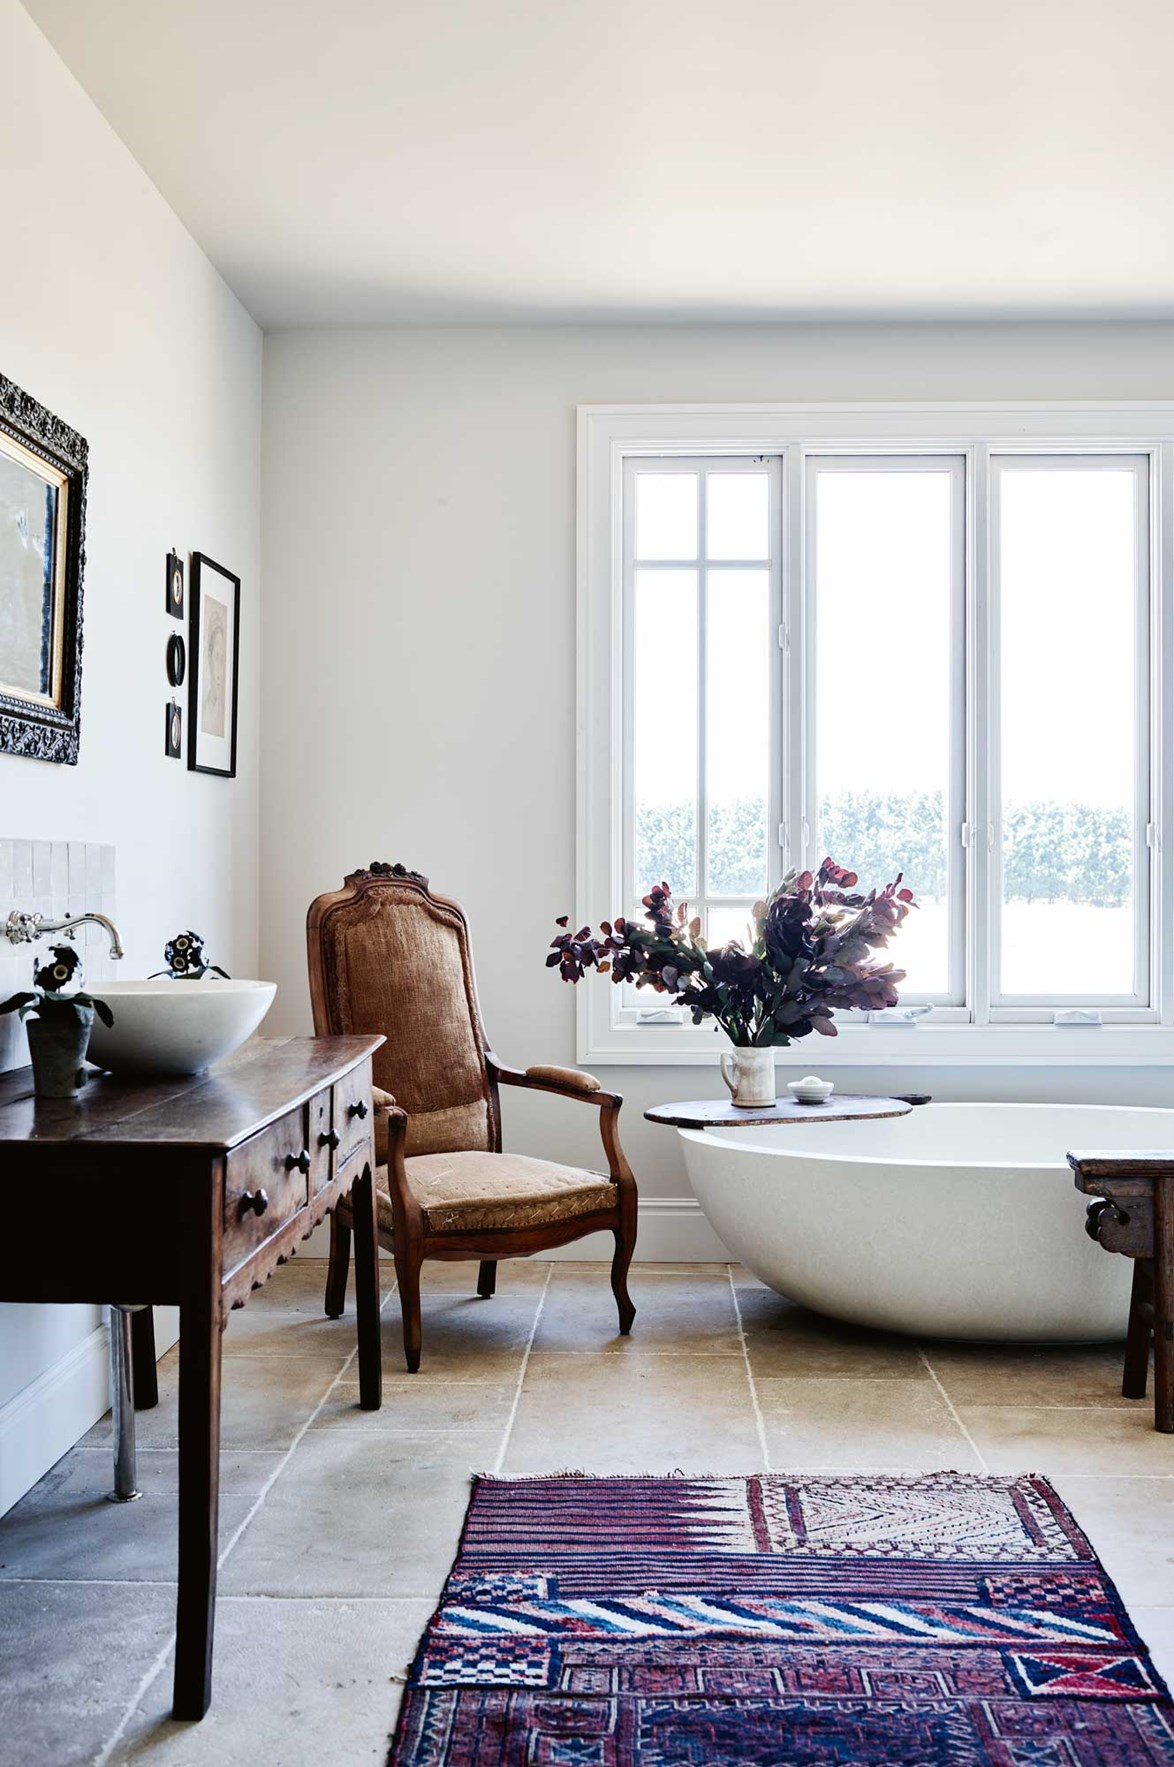 "Most bathrooms are fairly clinical spaces dominated by tiles, stone and laminate. This bathroom, in a [multi-generational family farmhouse](https://www.homestolove.com.au/share-house-a-family-farmhouse-in-the-macedon-ranges-14014|target=""_blank""), however, takes a different approach and is furnished in almost the same way as any other part of the home. Recreate the look by converting an antique writing desk into a vanity, adding classic tapware and an above-counter concrete basin."